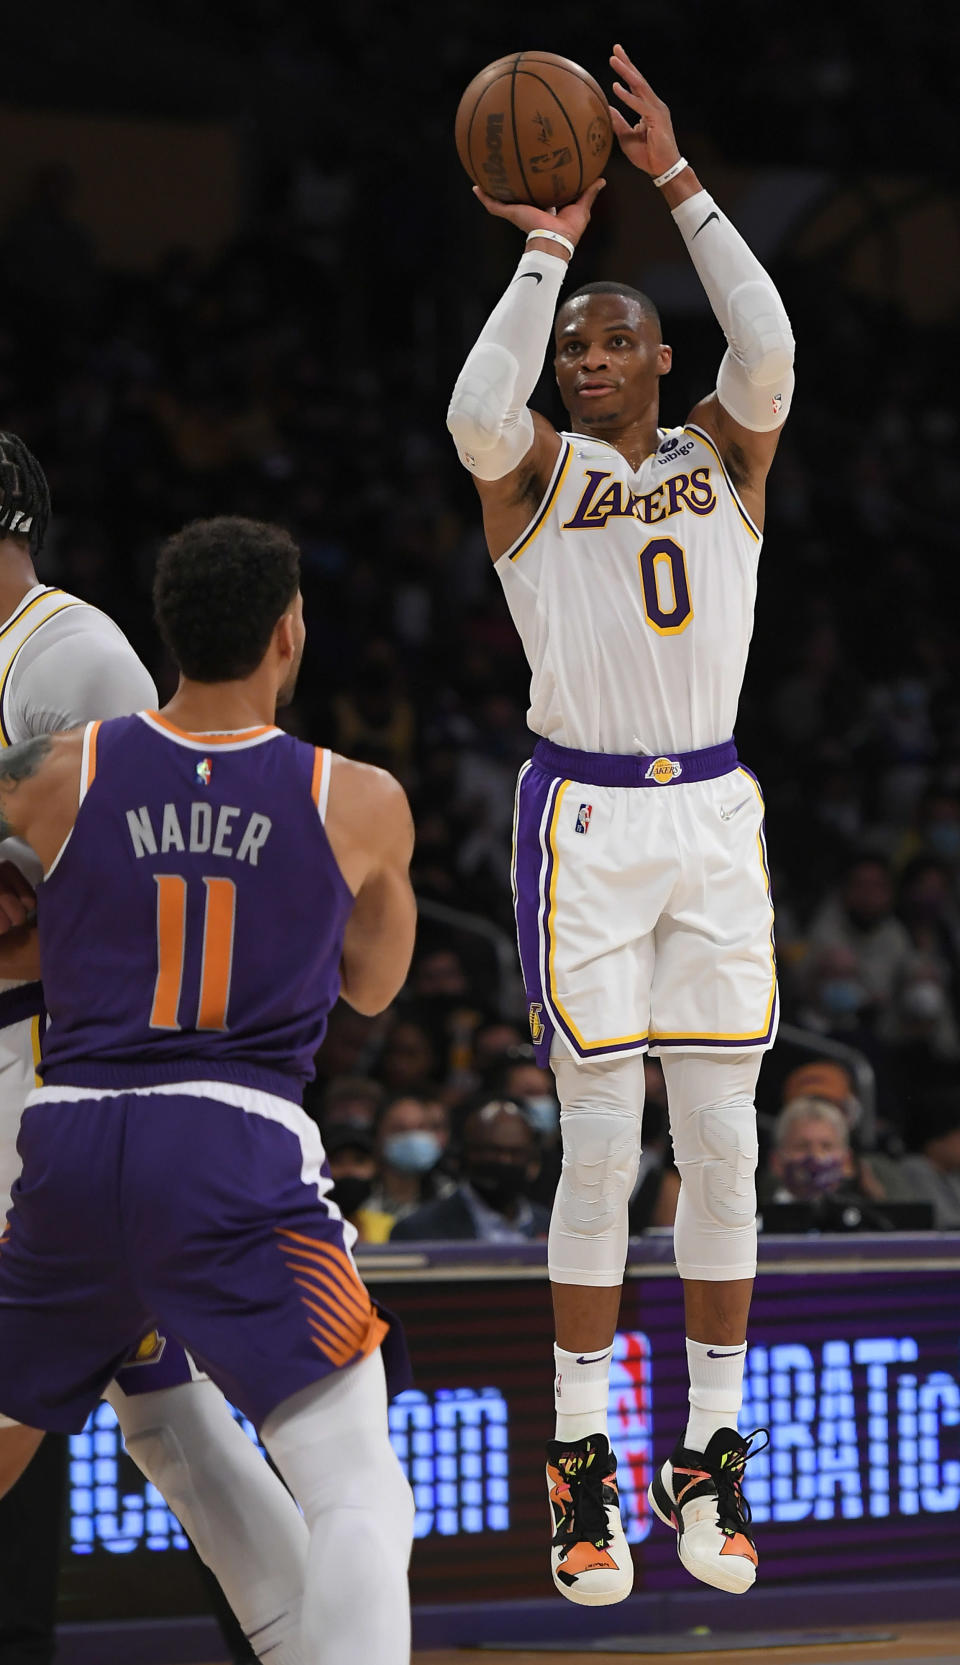 Phoenix Suns forward Abdel Nader (11) looks on as Los Angeles Lakers guard Russell Westbrook (0) shoots the ball in the second half of a preseason NBA basketball game in Los Angeles, Sunday, Oct. 10, 2021. (AP Photo/John McCoy)